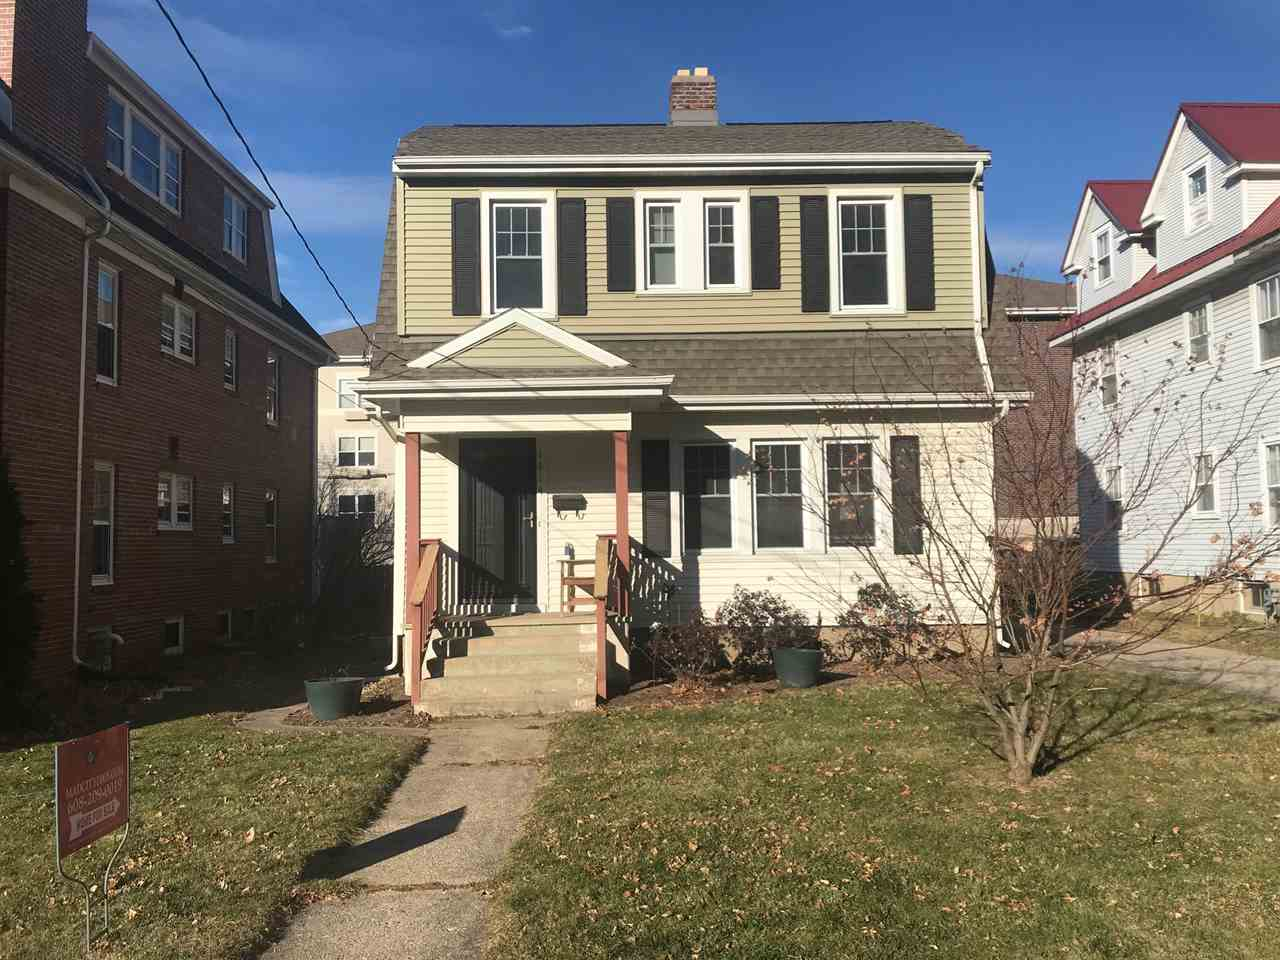 2314 Kendall Ave, MADISON, Wisconsin 53726, 3 Bedrooms Bedrooms, ,2 BathroomsBathrooms,Single Family,For Sale,2314 Kendall Ave,2,1898723